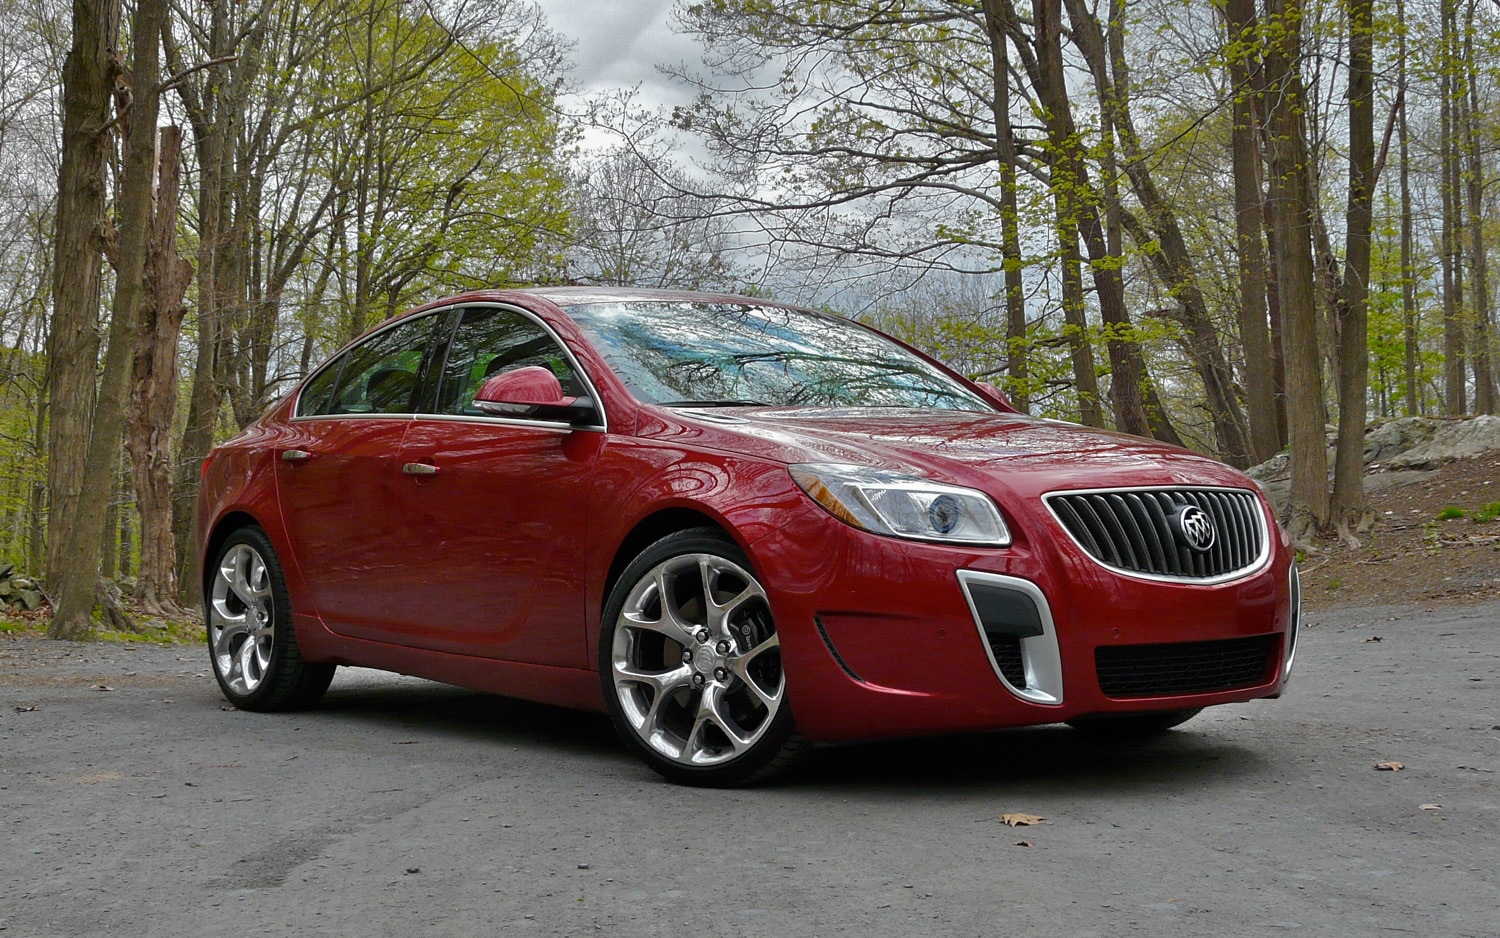 2012 Buick Regal GS Front Right Side View3